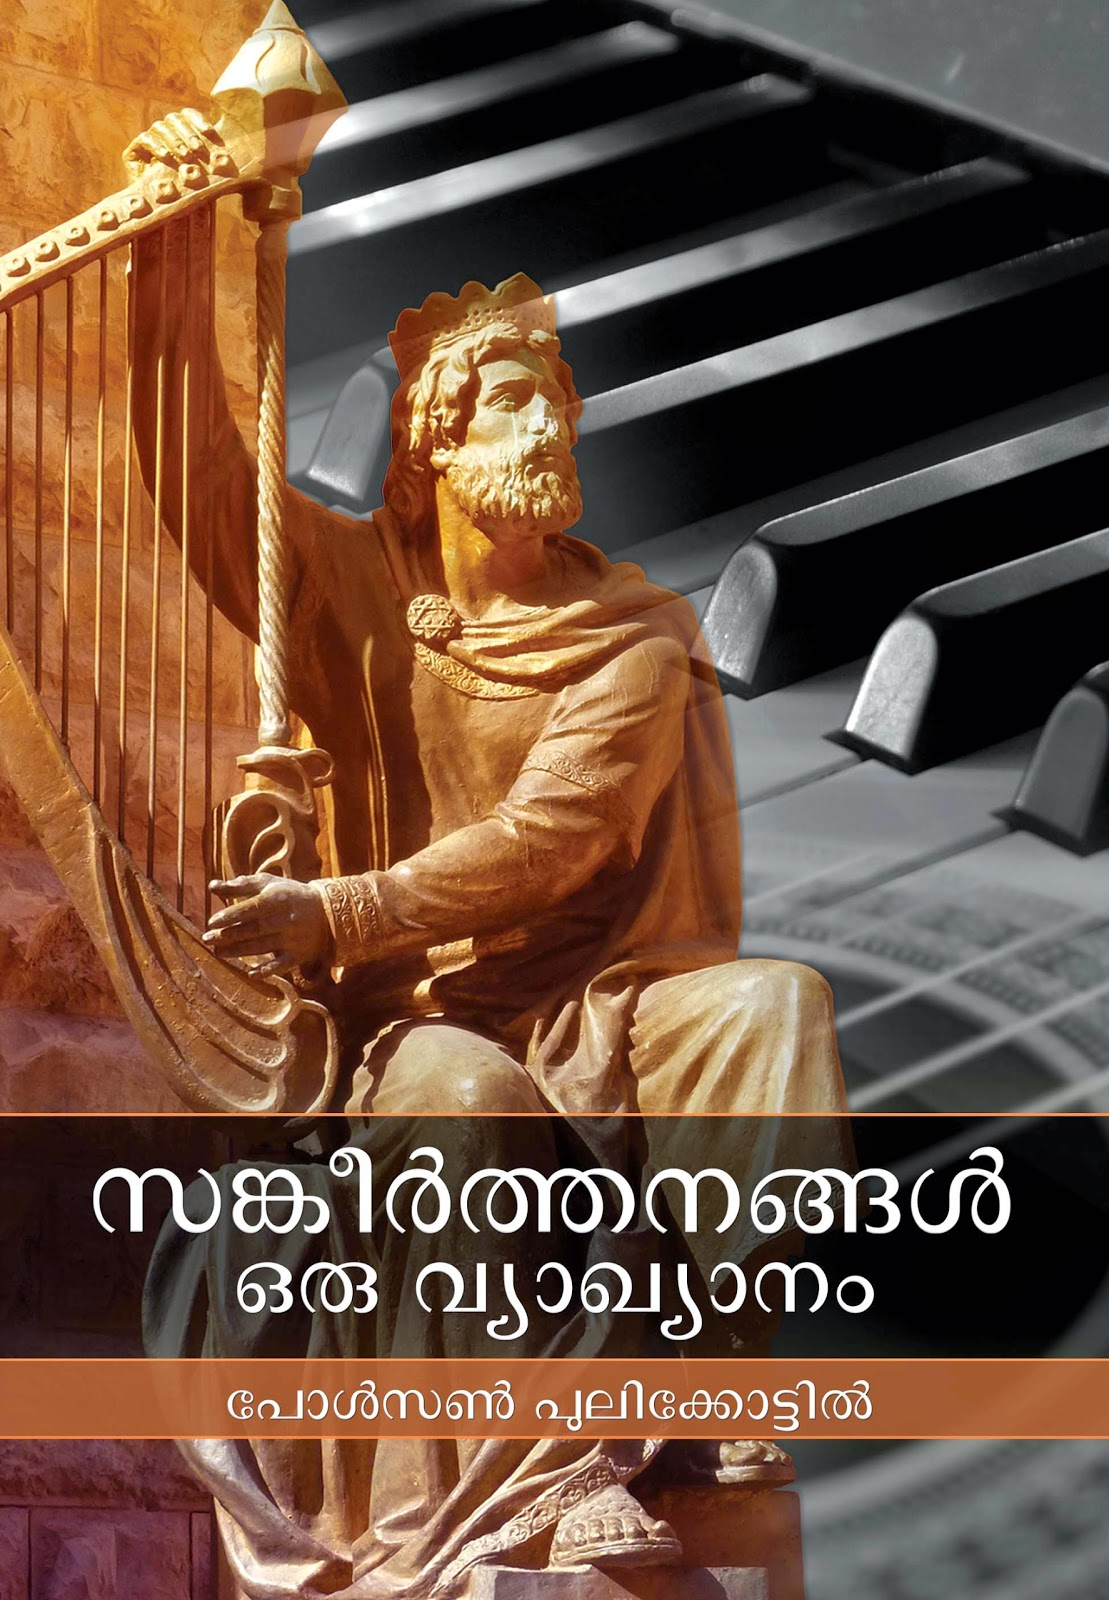 Malayalam biblical essays - What Does 666 Mean? What Is the Mark of